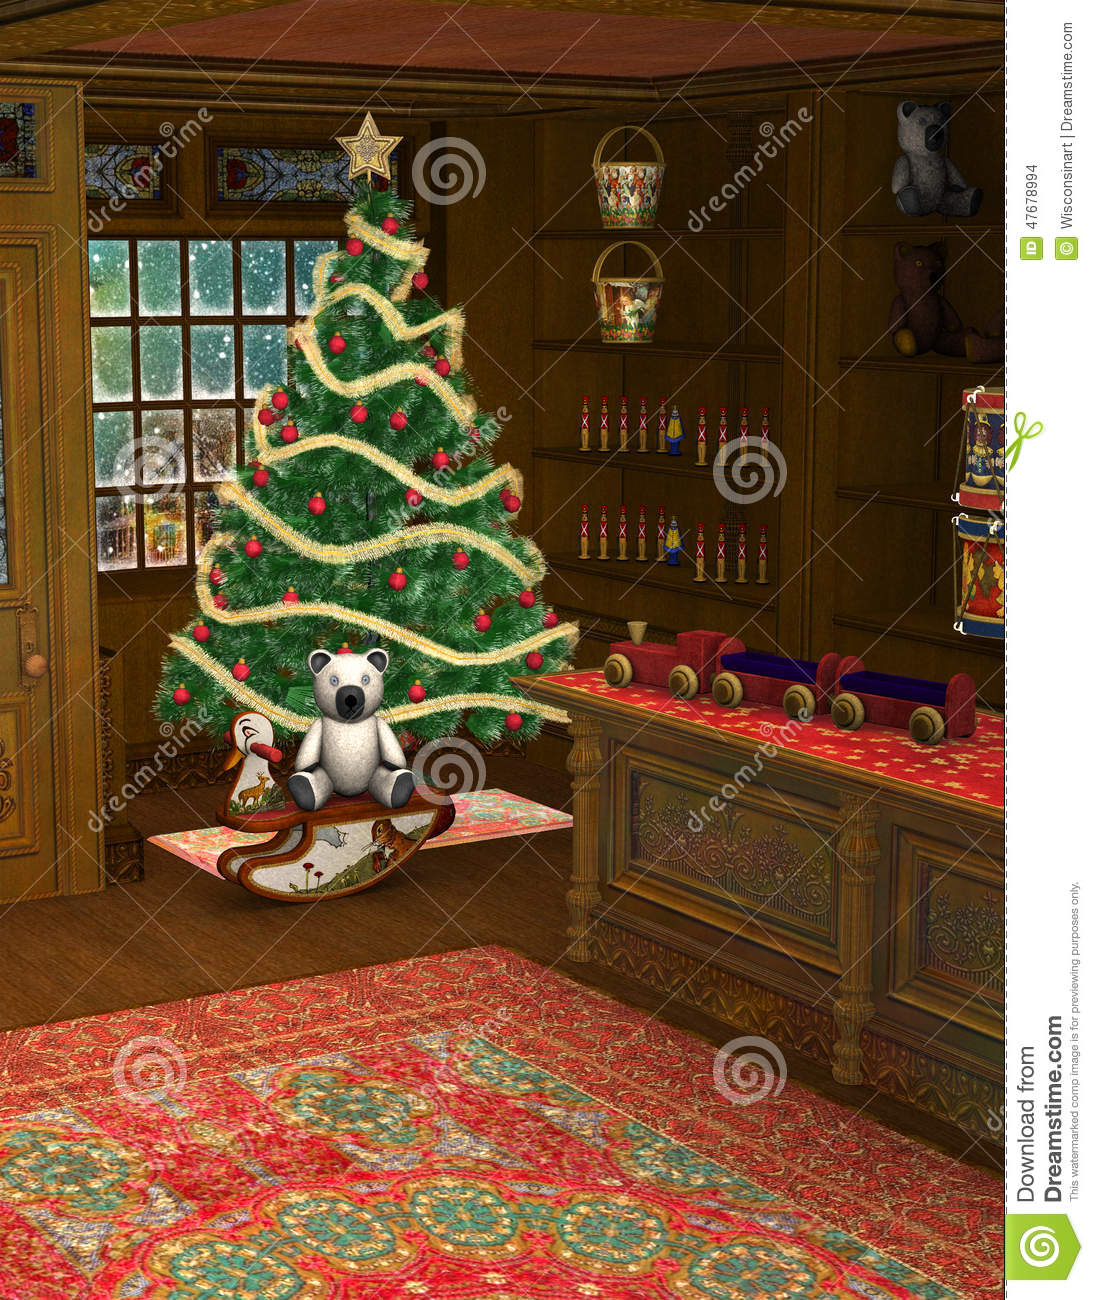 Christmas Toy Store : Christmas shop toy store illustration stock